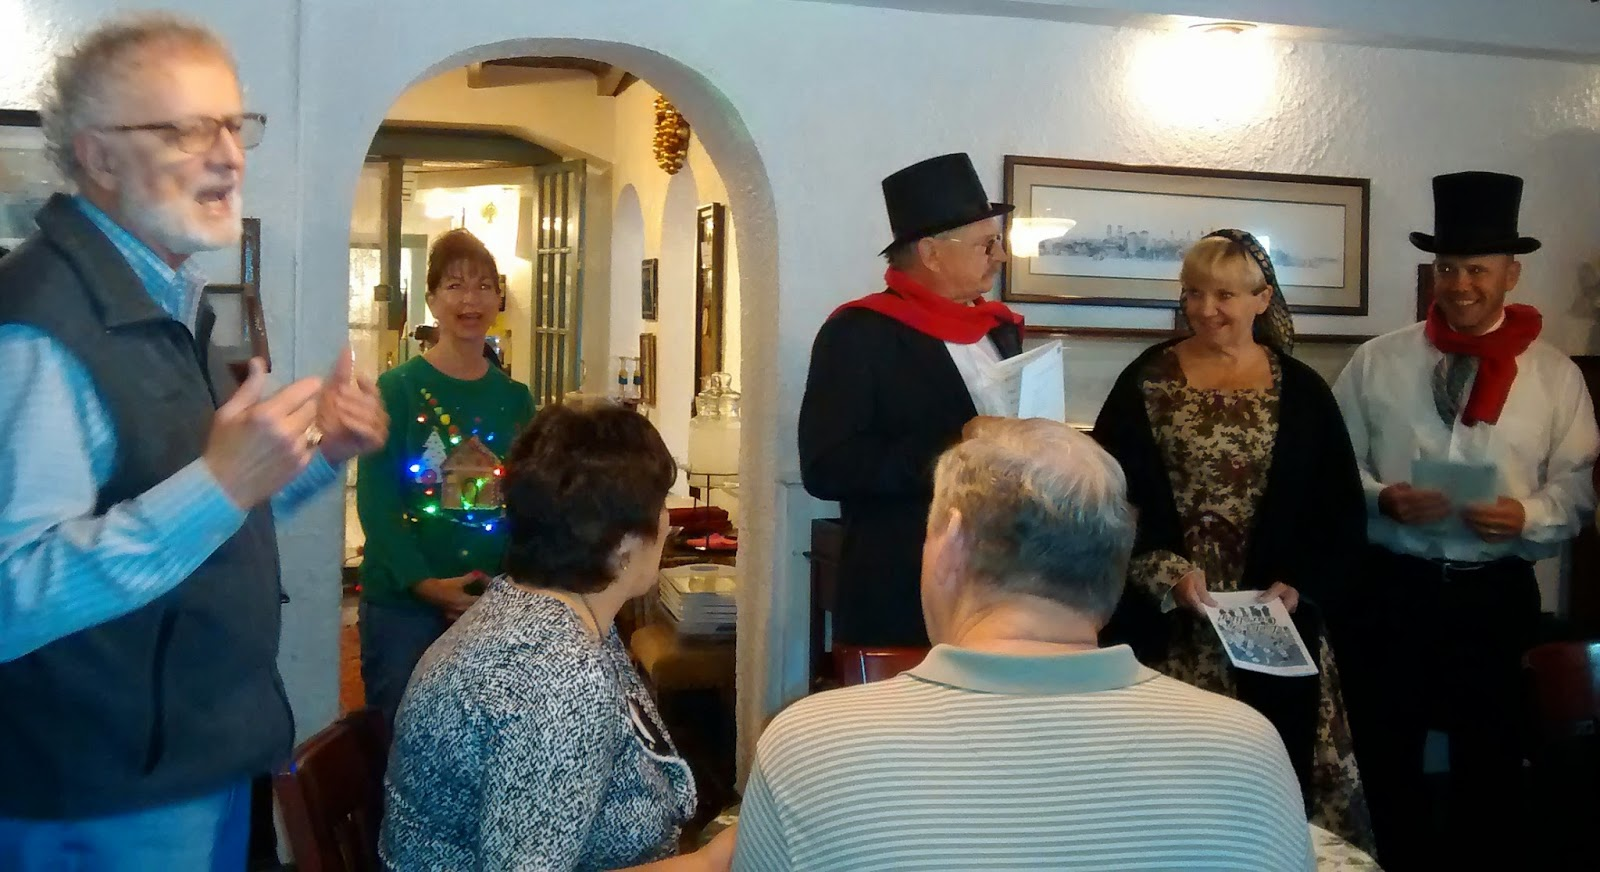 Holiday Singers ... Thanks to the Old Town Trolley (the GREEN AND ORANGE trolley) 4 Intro St. Francis Inn St. Augustine Bed and Breakfast